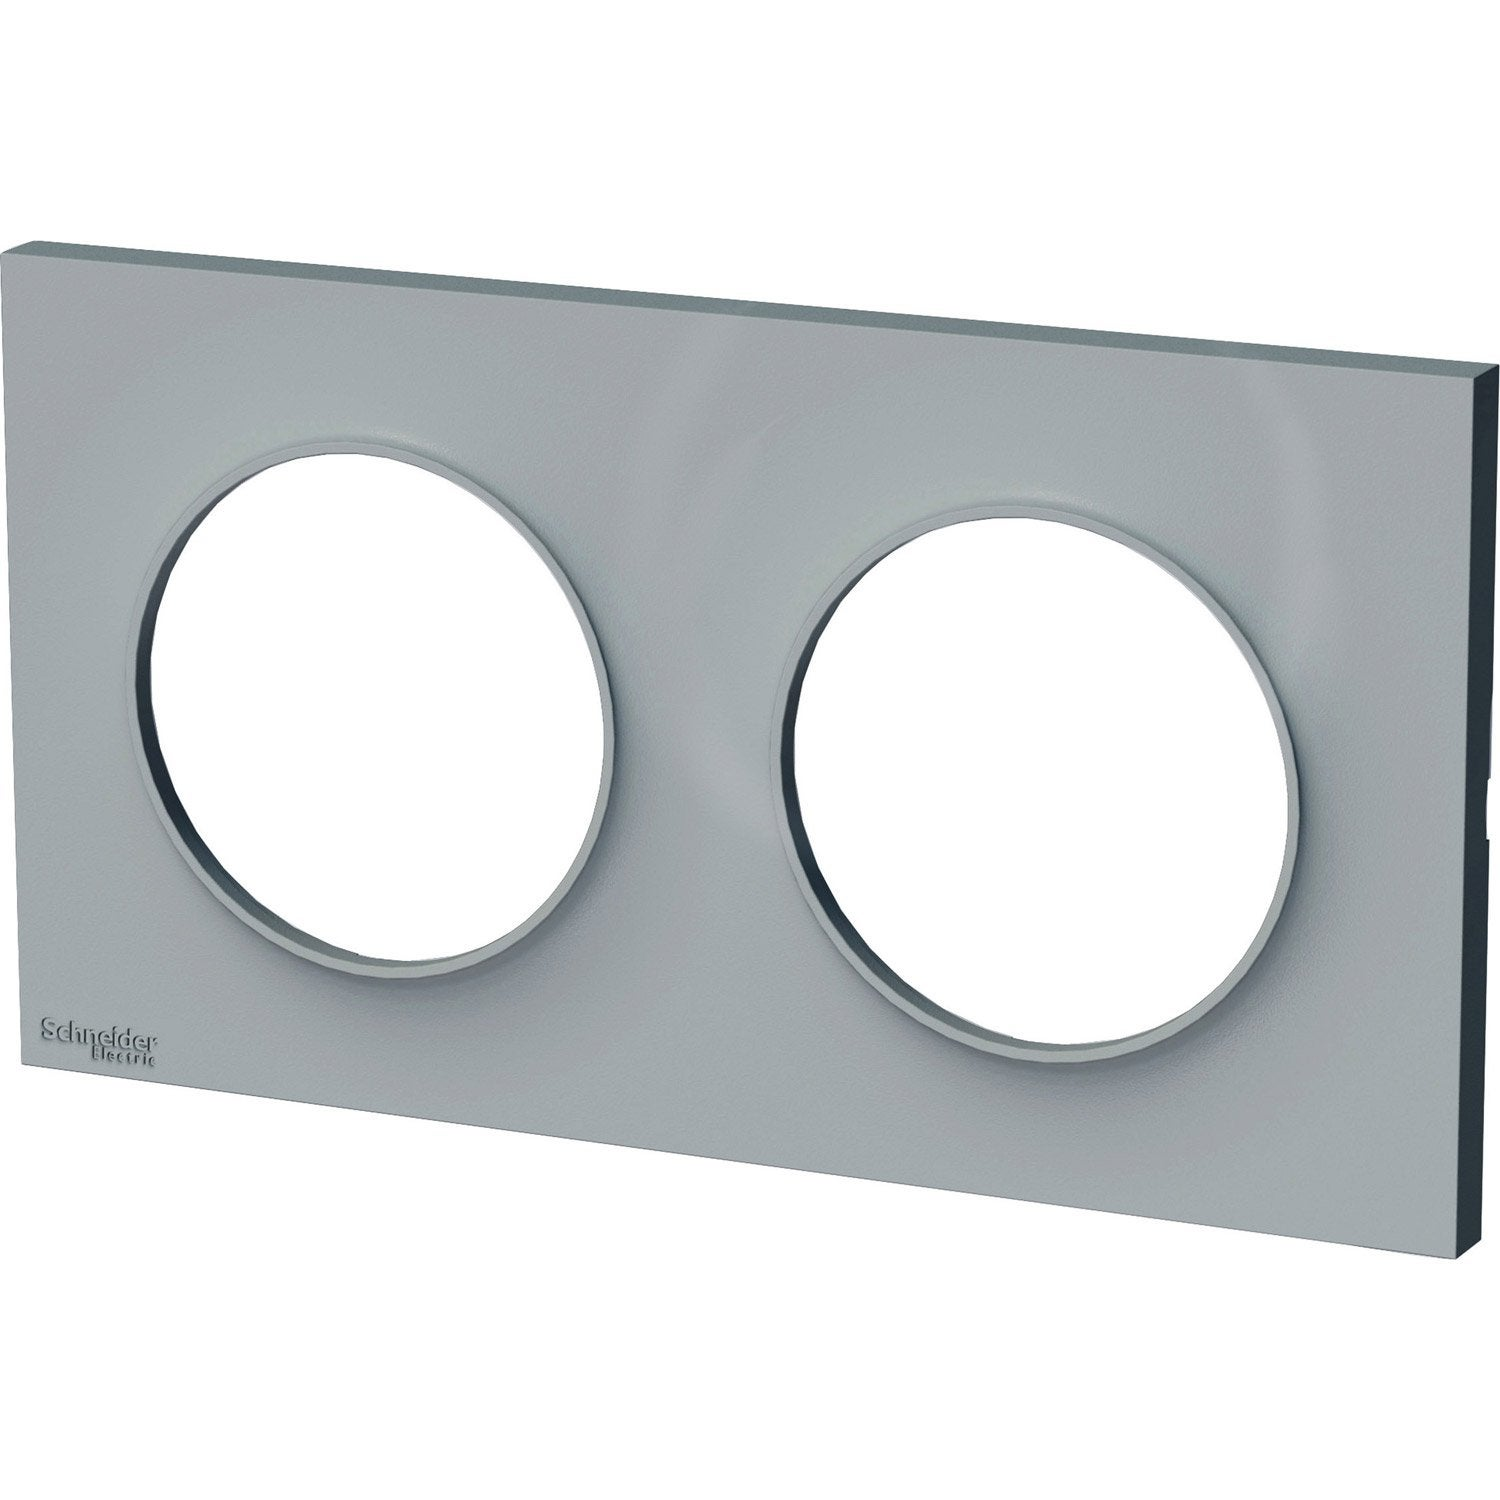 Plaque double odace schneider electric gris cendre leroy merlin - Plaque cuisson leroy merlin ...